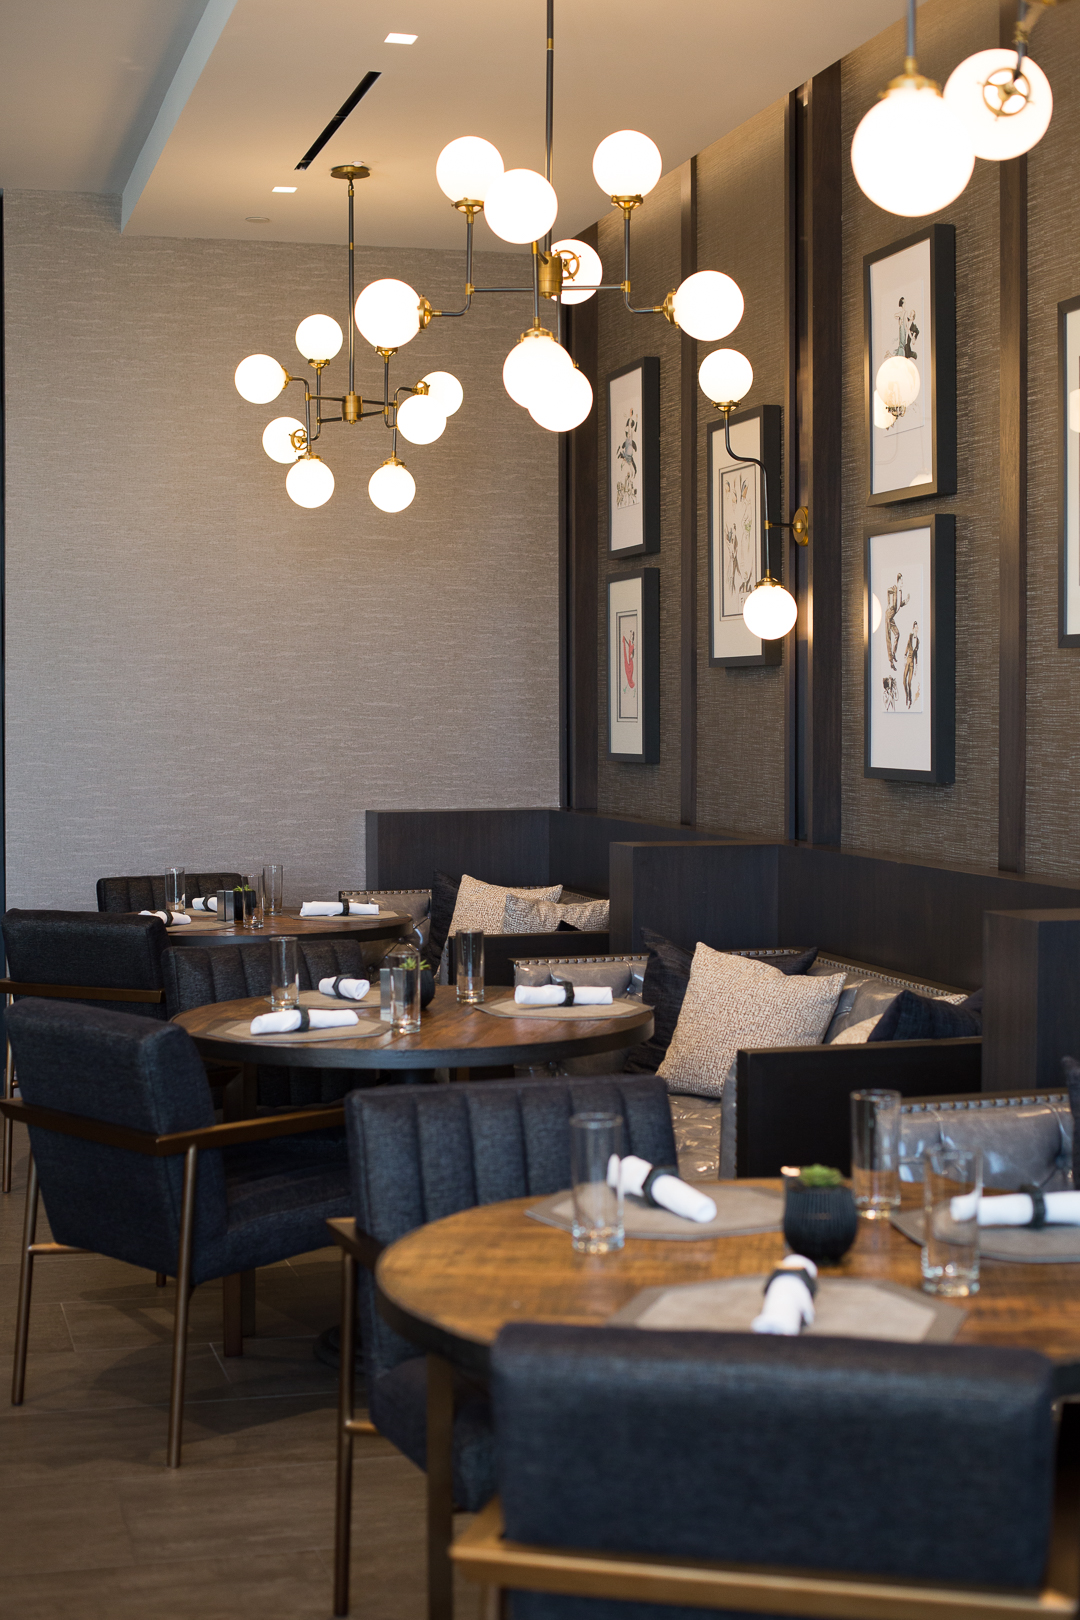 Boston Blogger Talks About Newly Opened Hotel, The Row